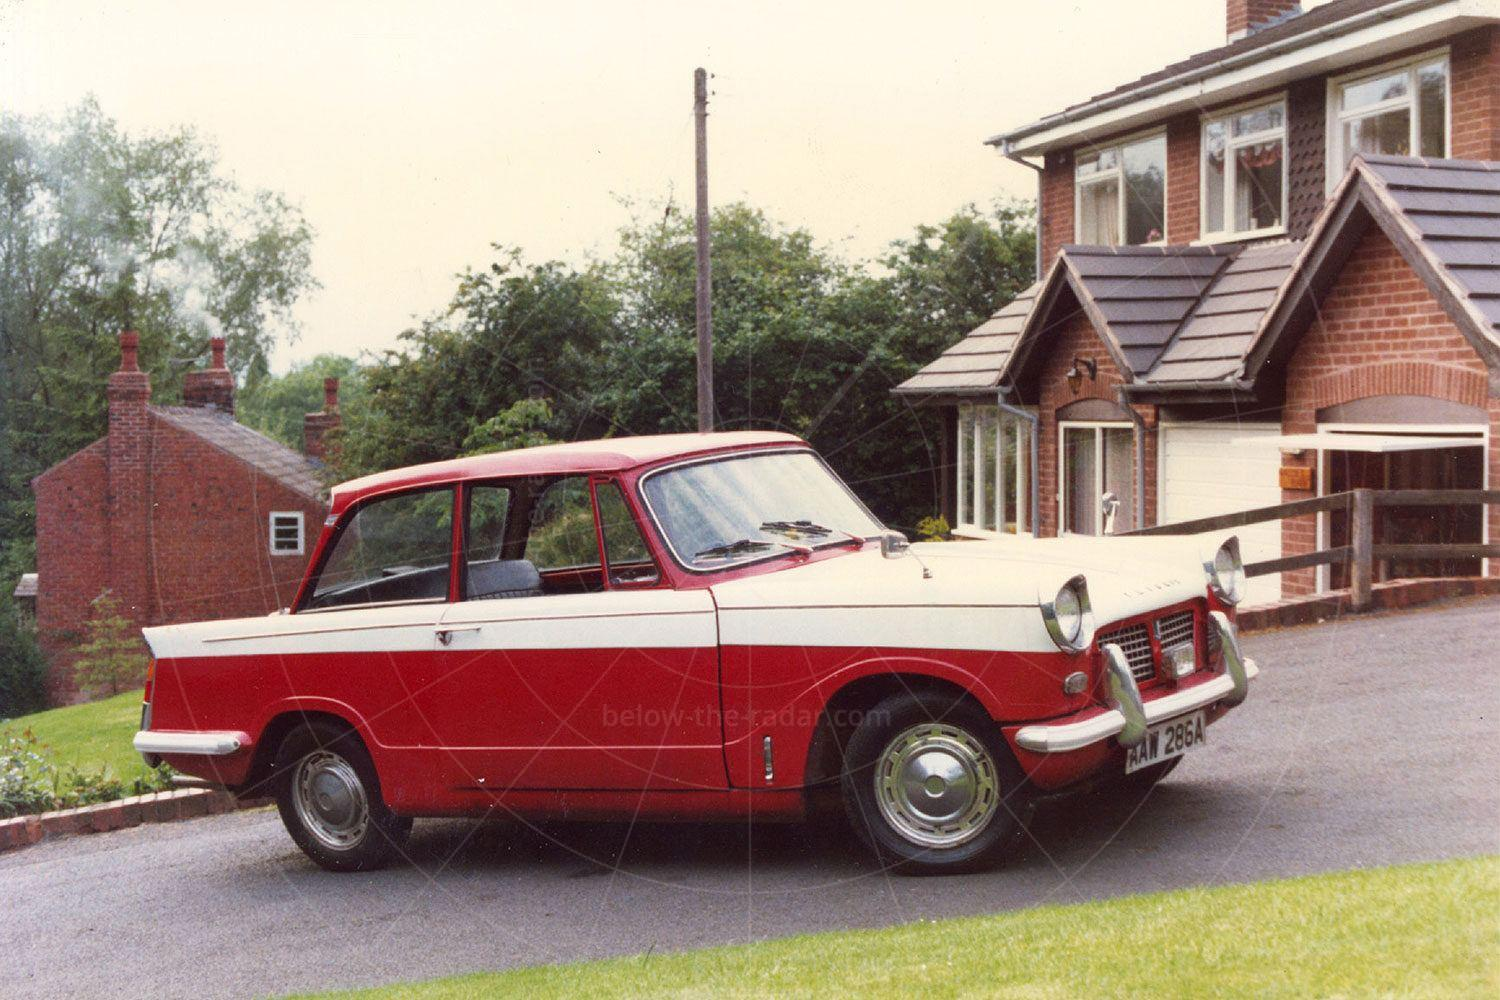 Where it all started - with a 1962 Triumph Herald 1200 saloon Pic: magiccarpics.co.uk | Where it all started - with a 1962 Triumph Herald 1200 saloon